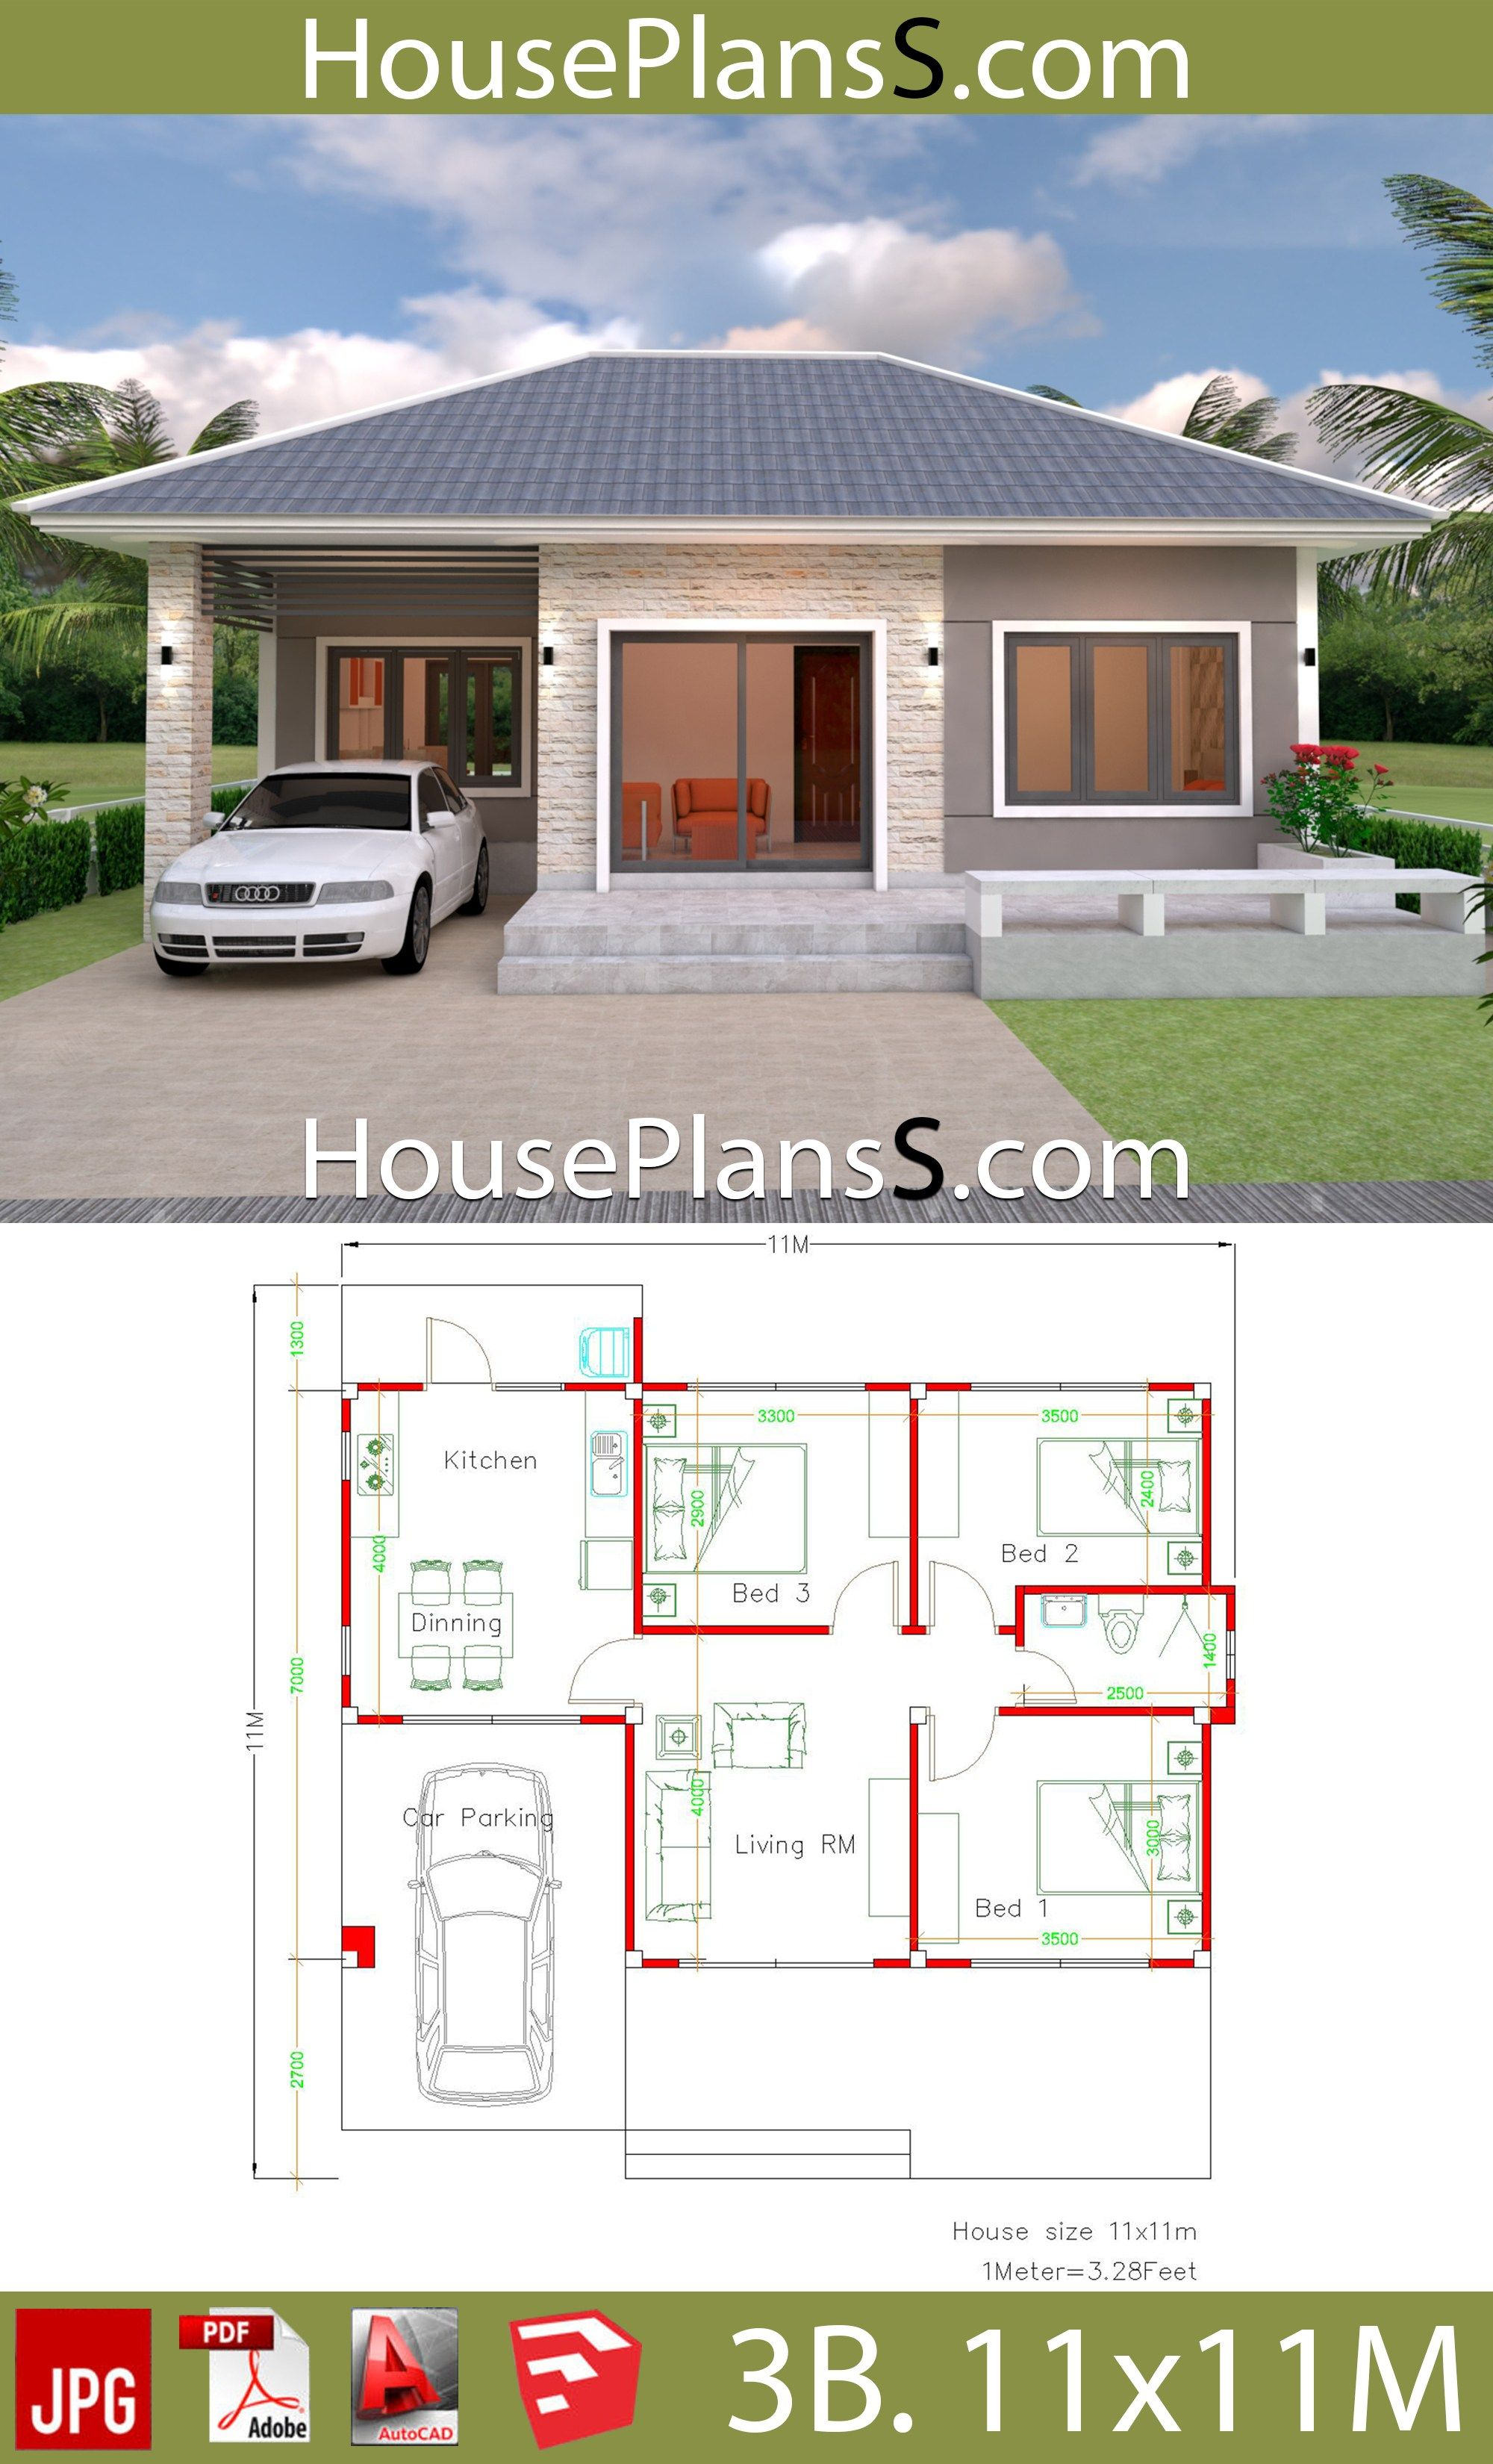 Simple House Design Plans 11x11 With 3 Bedrooms Full Plans House Plans Sam Small House Layout Small House Design Plans House Layouts